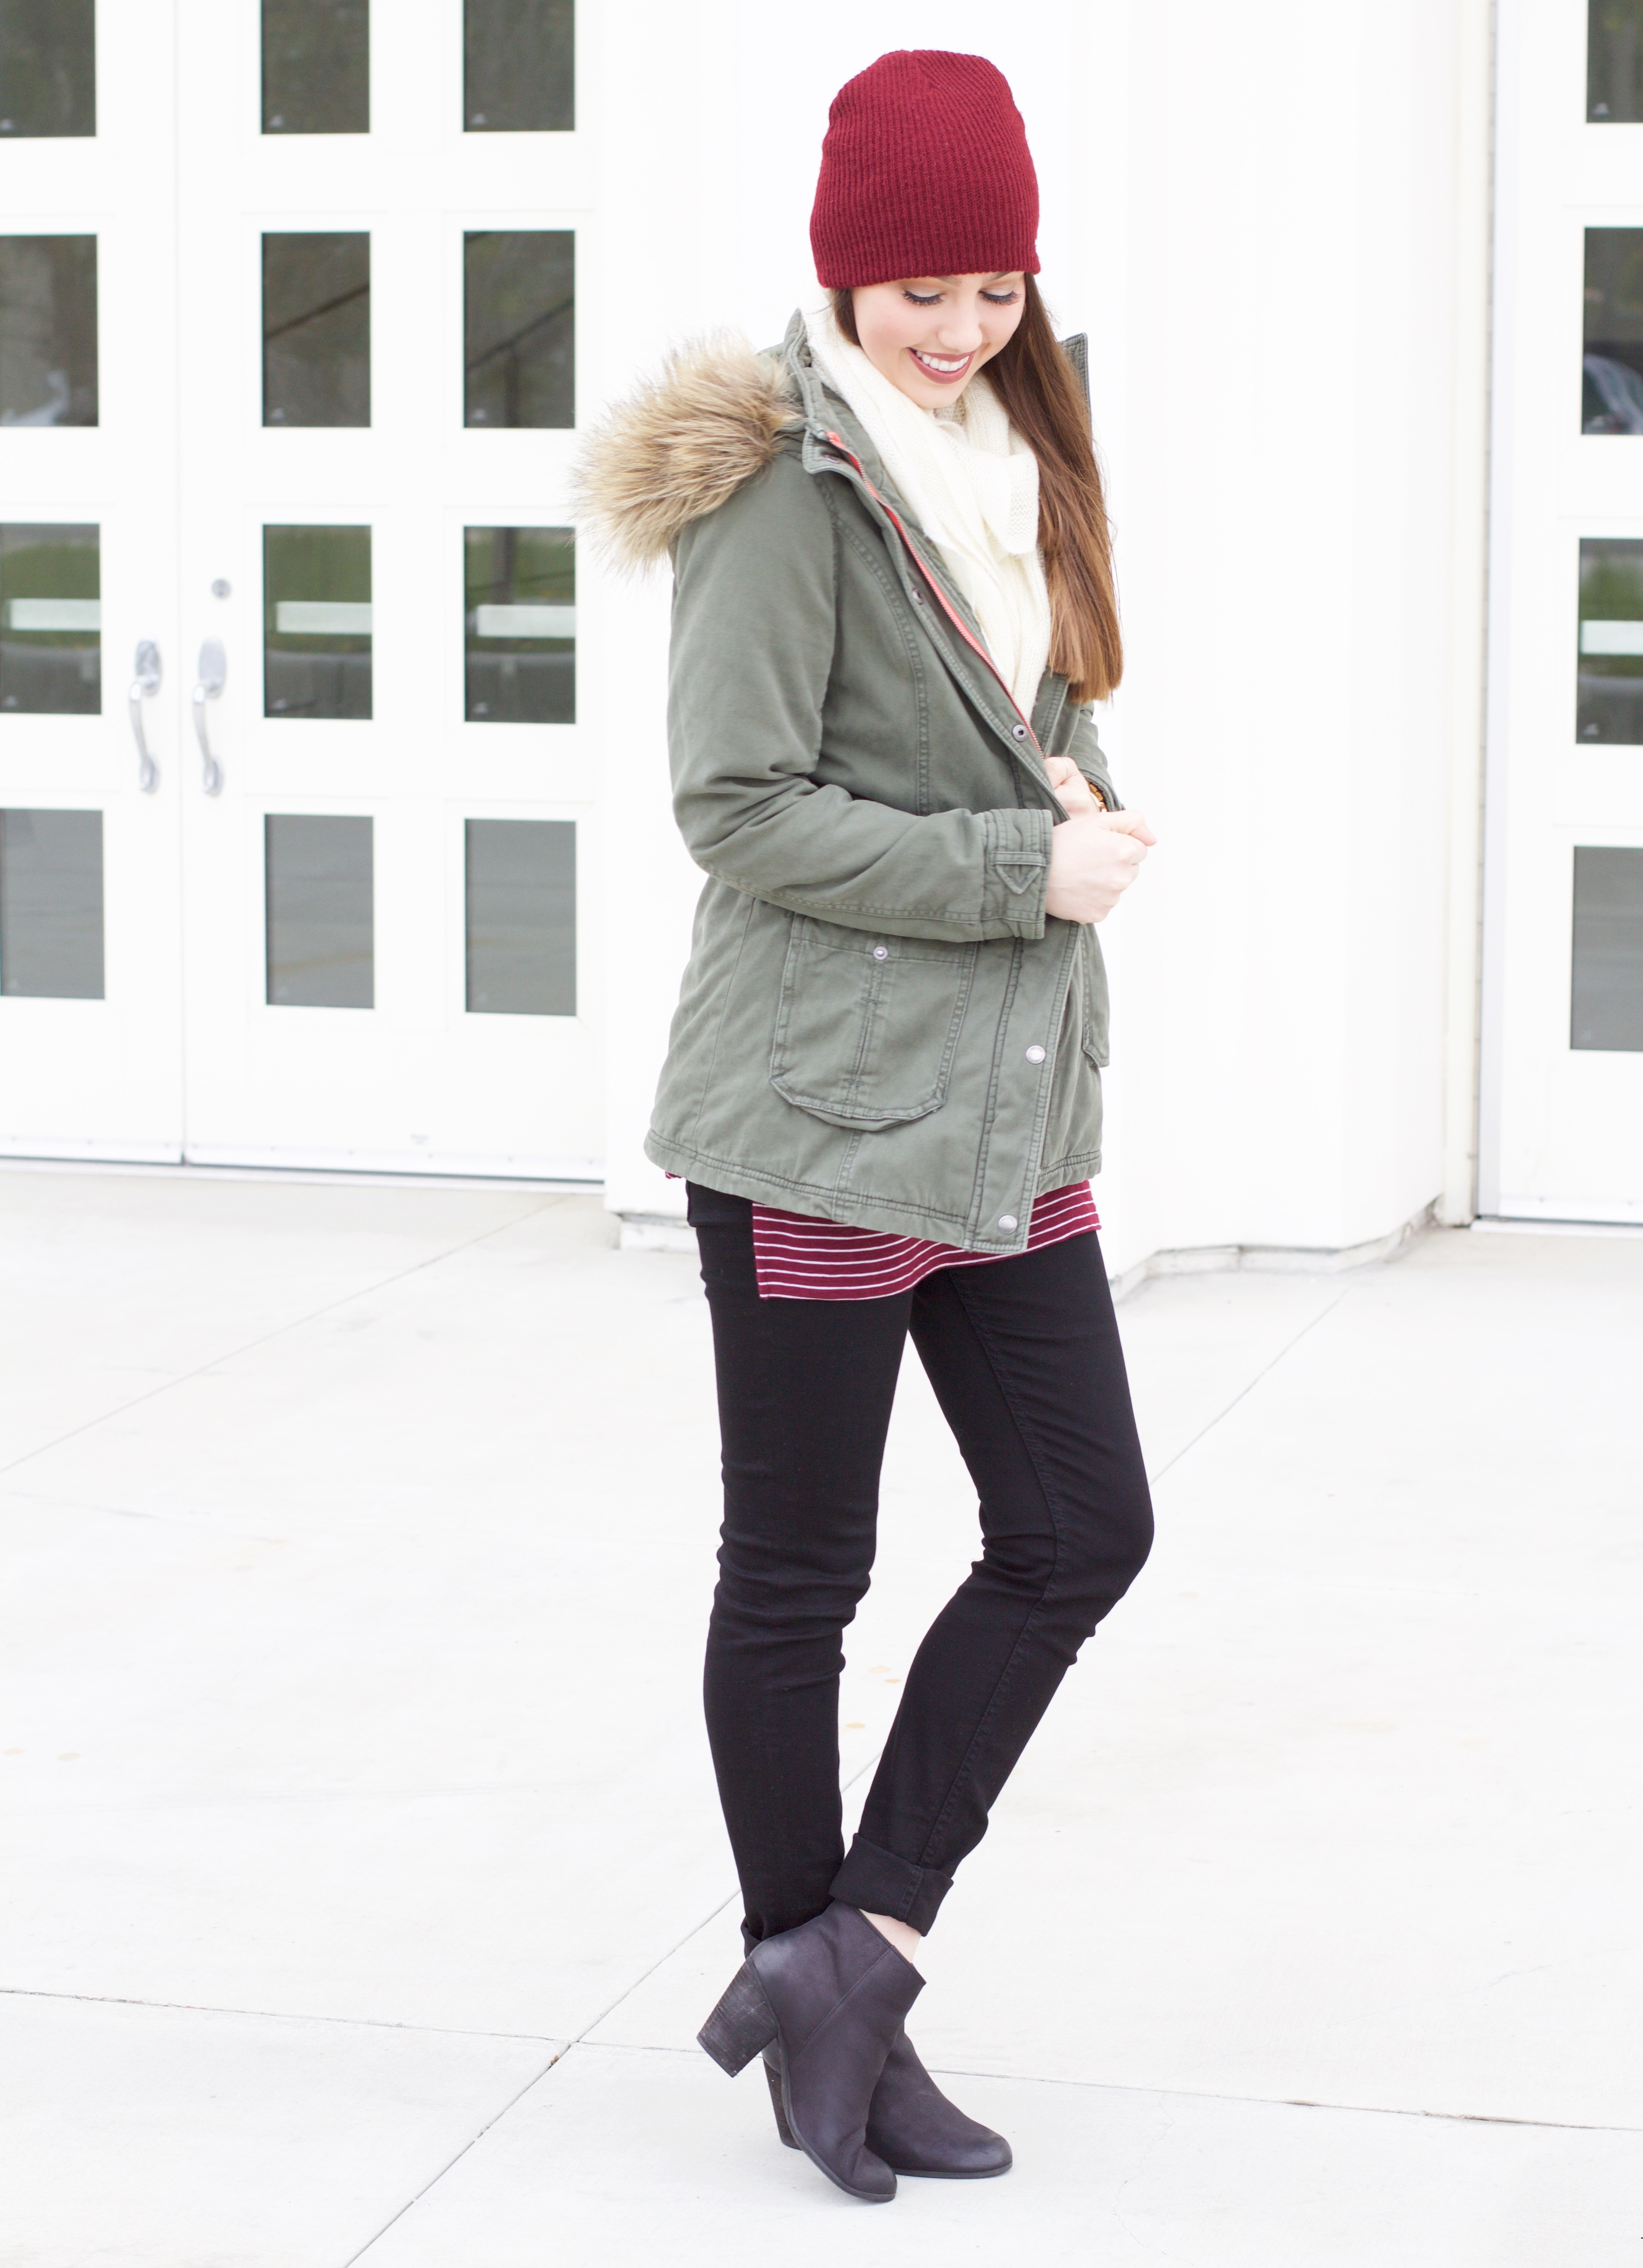 cozy winter outfit idea